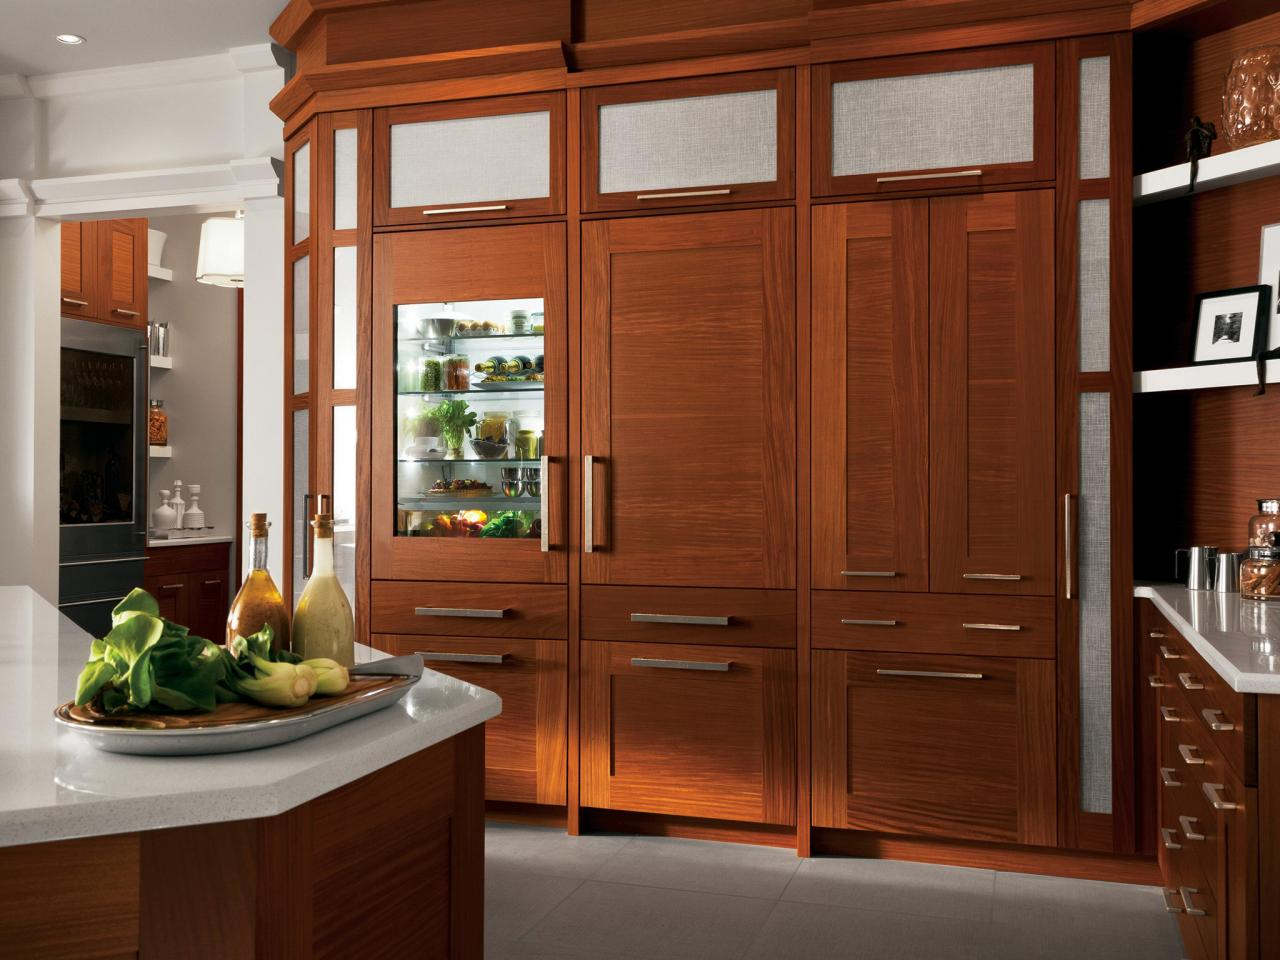 custom kitchen cabinets pictures ideas tips from hgtv